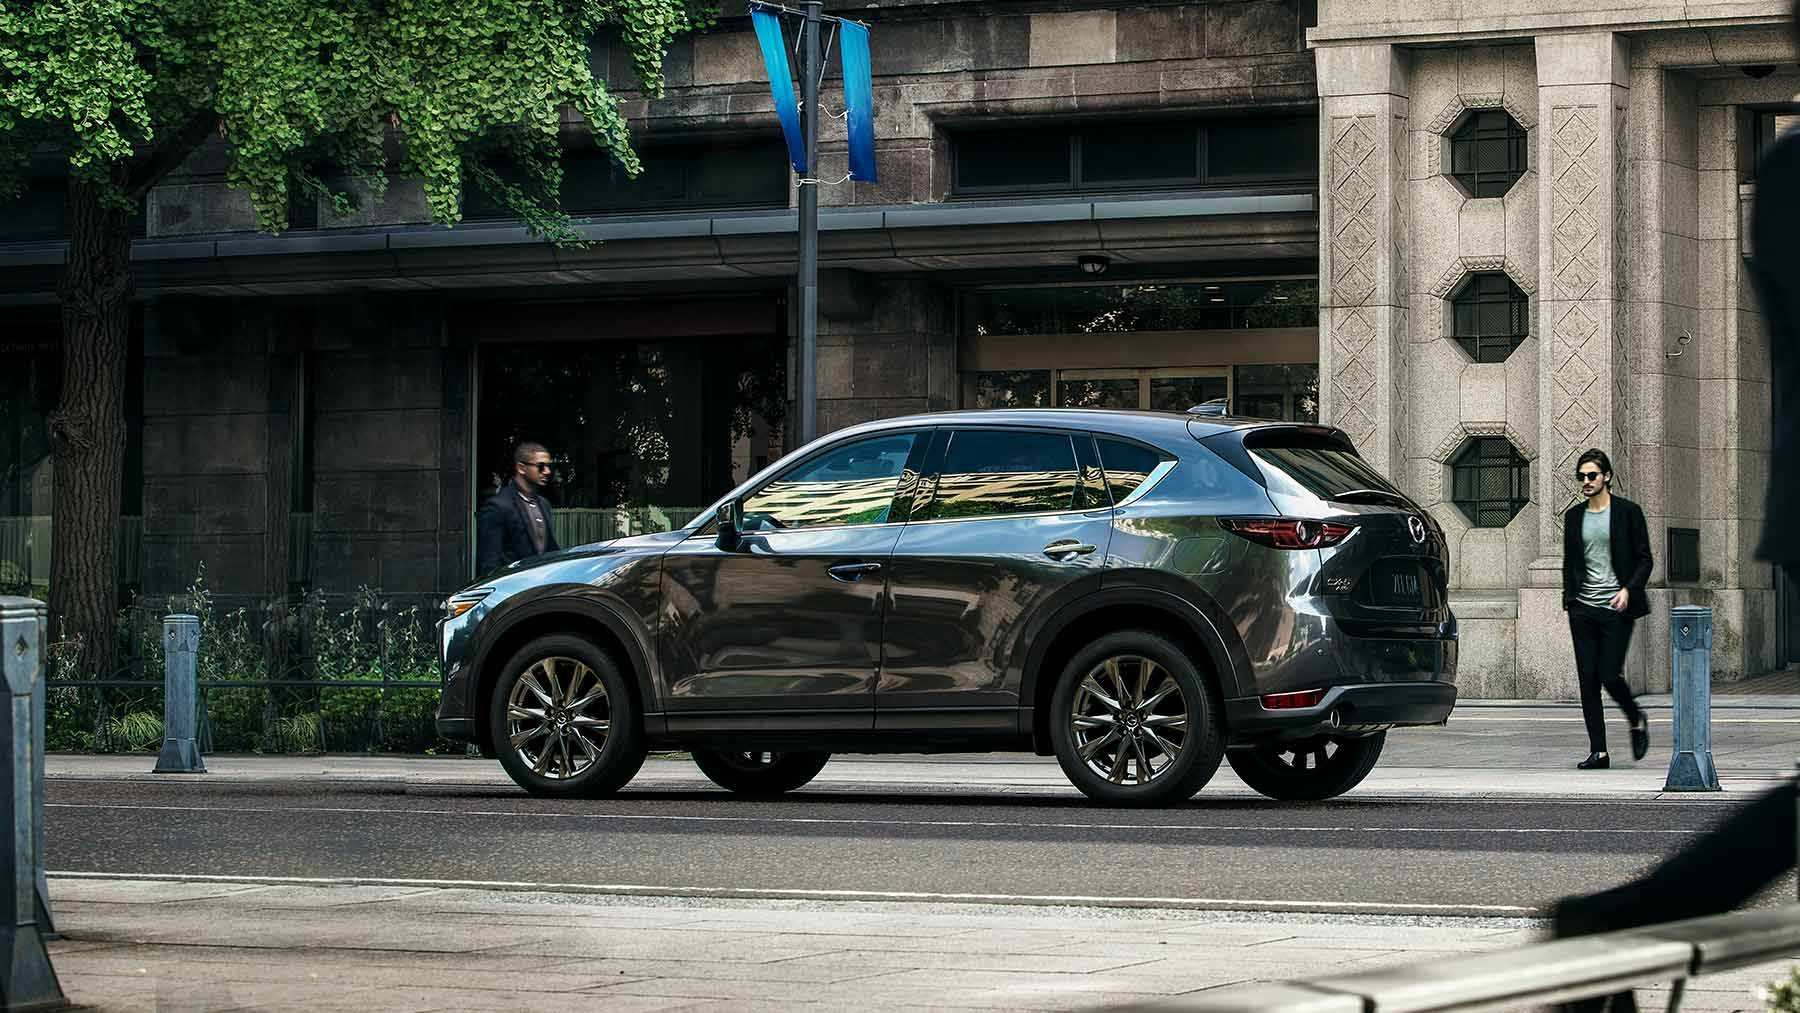 96 The Best Mazda X5 2020 Price Design And Review